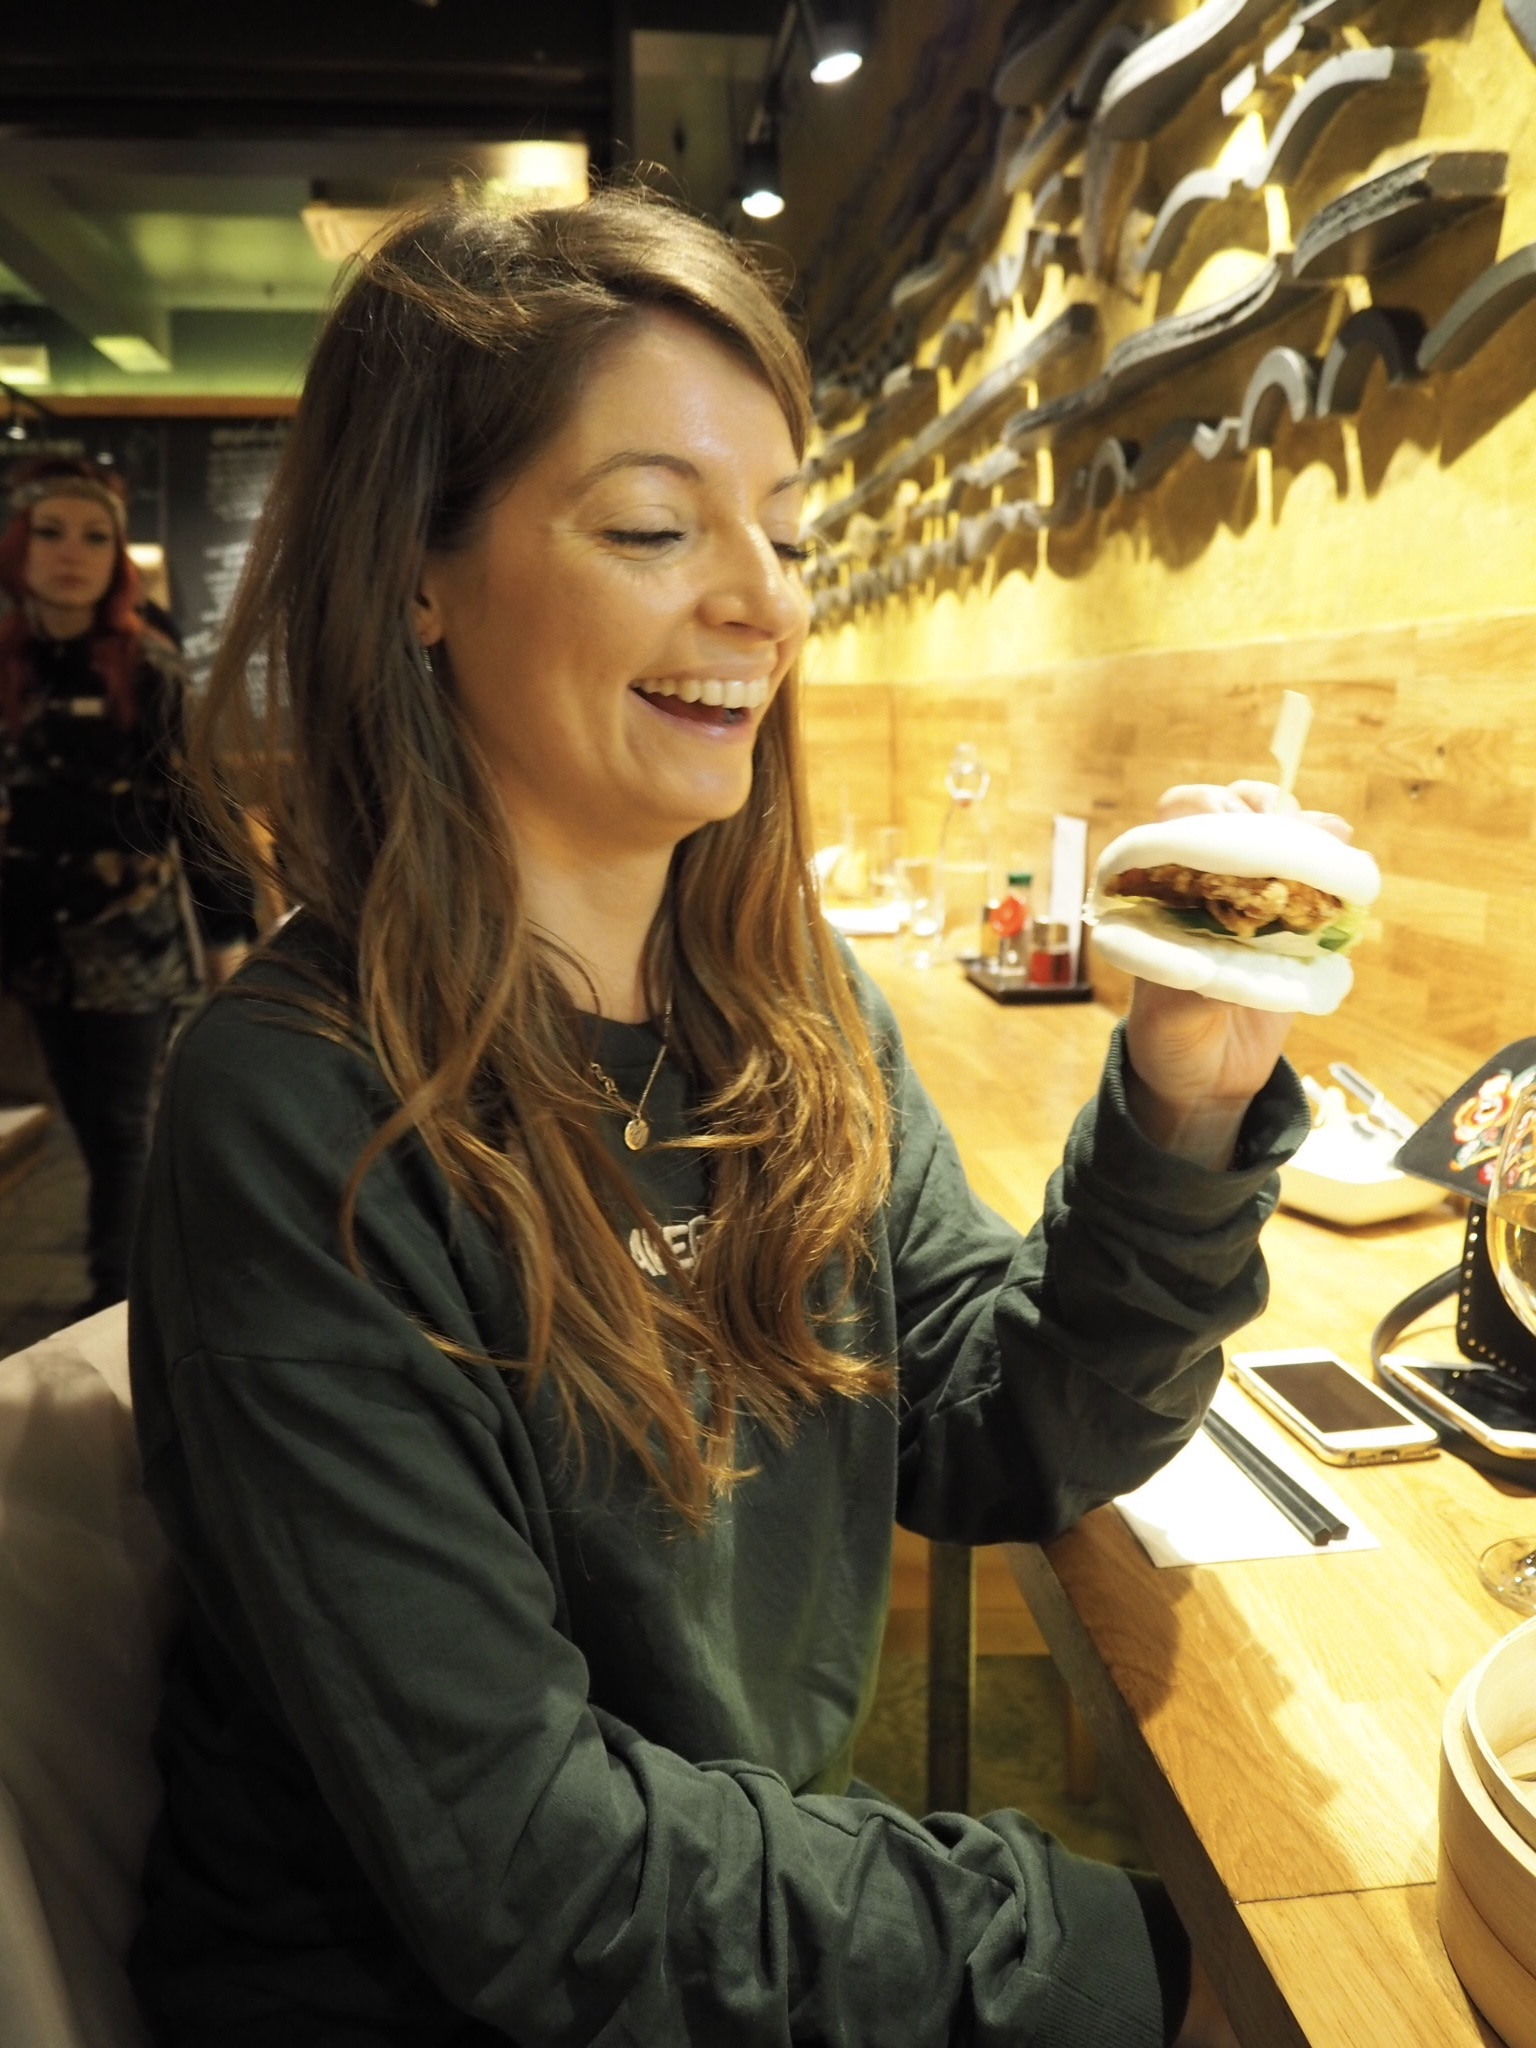 BRYONY HOPKNS, FOOD BLOGGER, A BELLY FULL OF FOOD